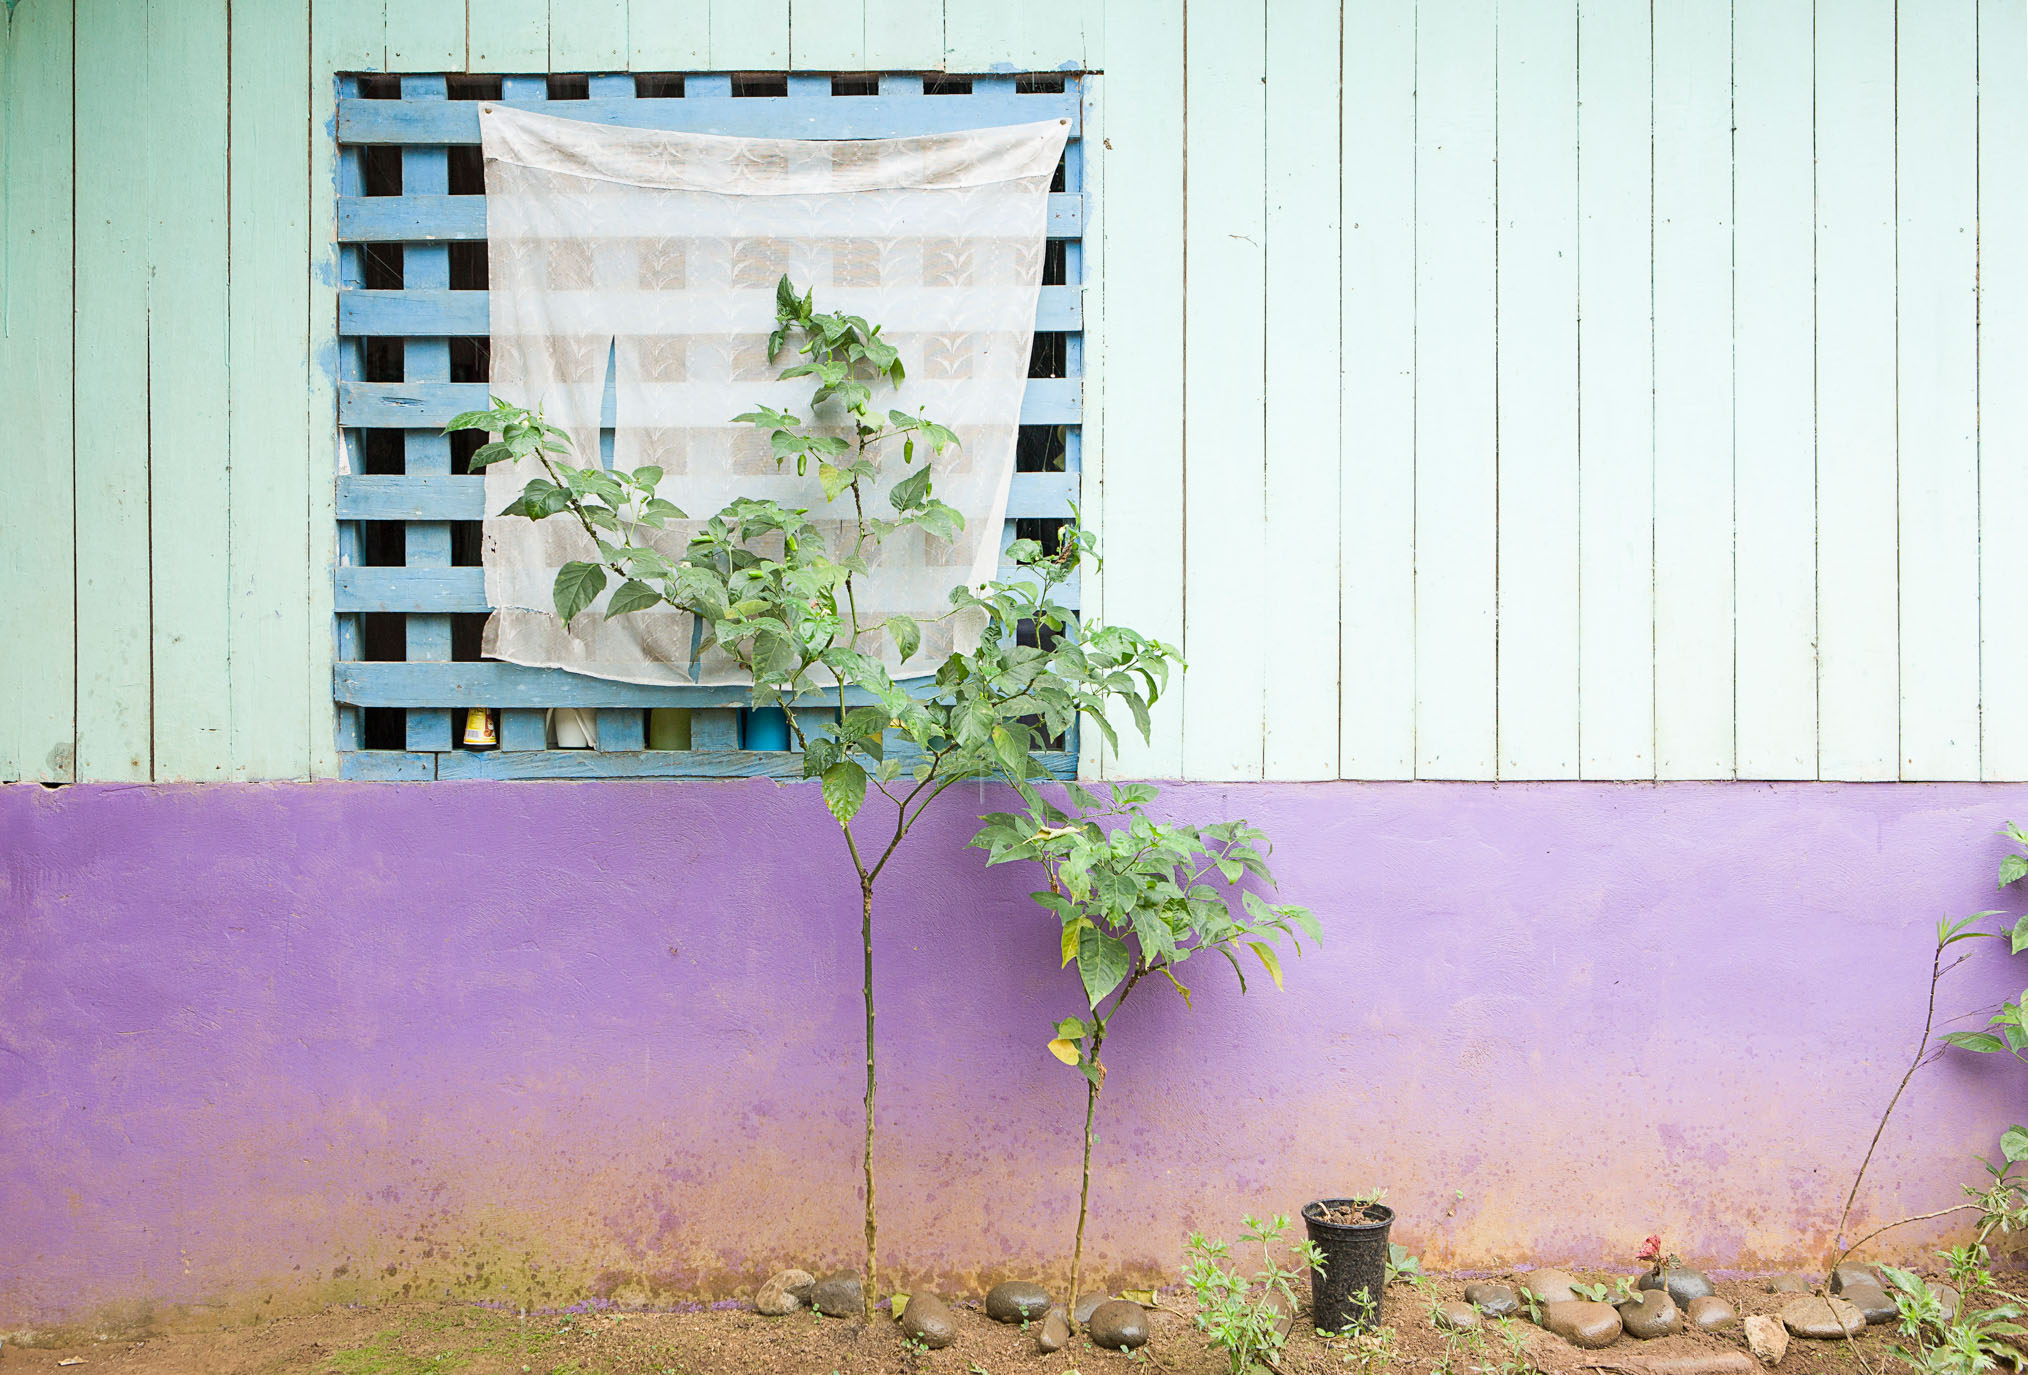 Plant and trees outside the home, Environmental tax to maintain forests in Costa Rica - If Not Us Then Who?